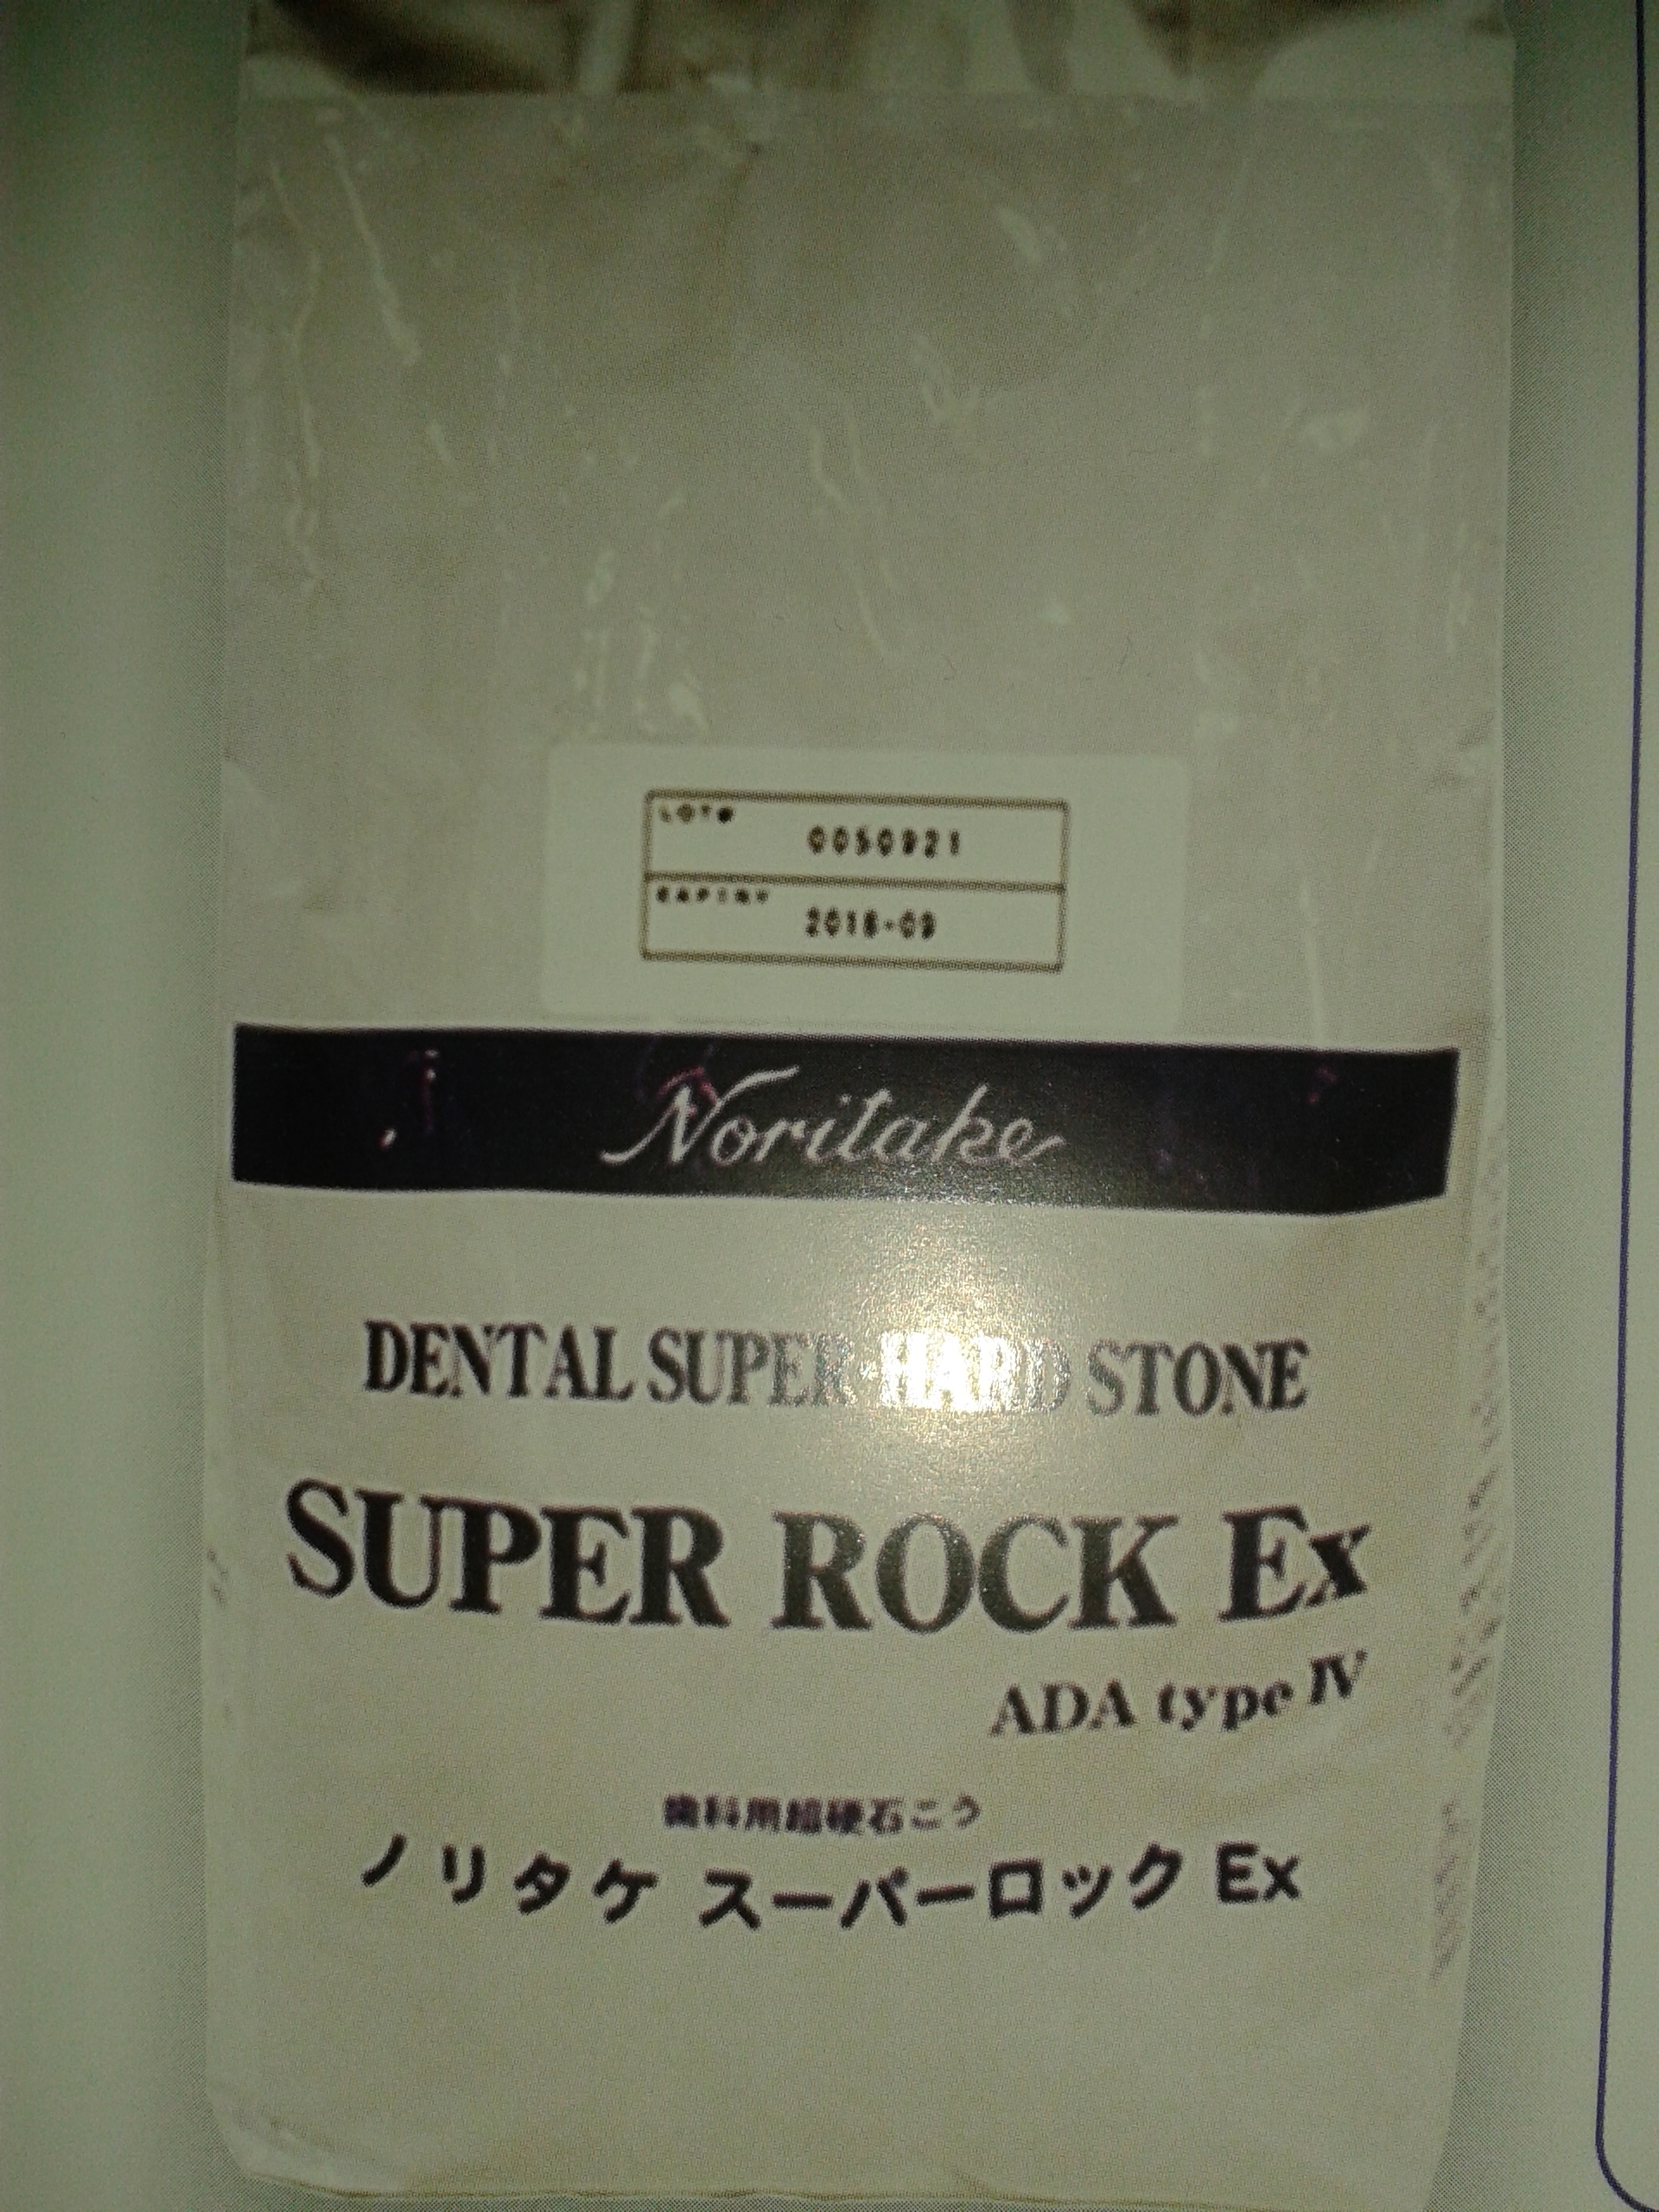 Super Rock EX тип IV - гипс 4 класса, 11,3кг